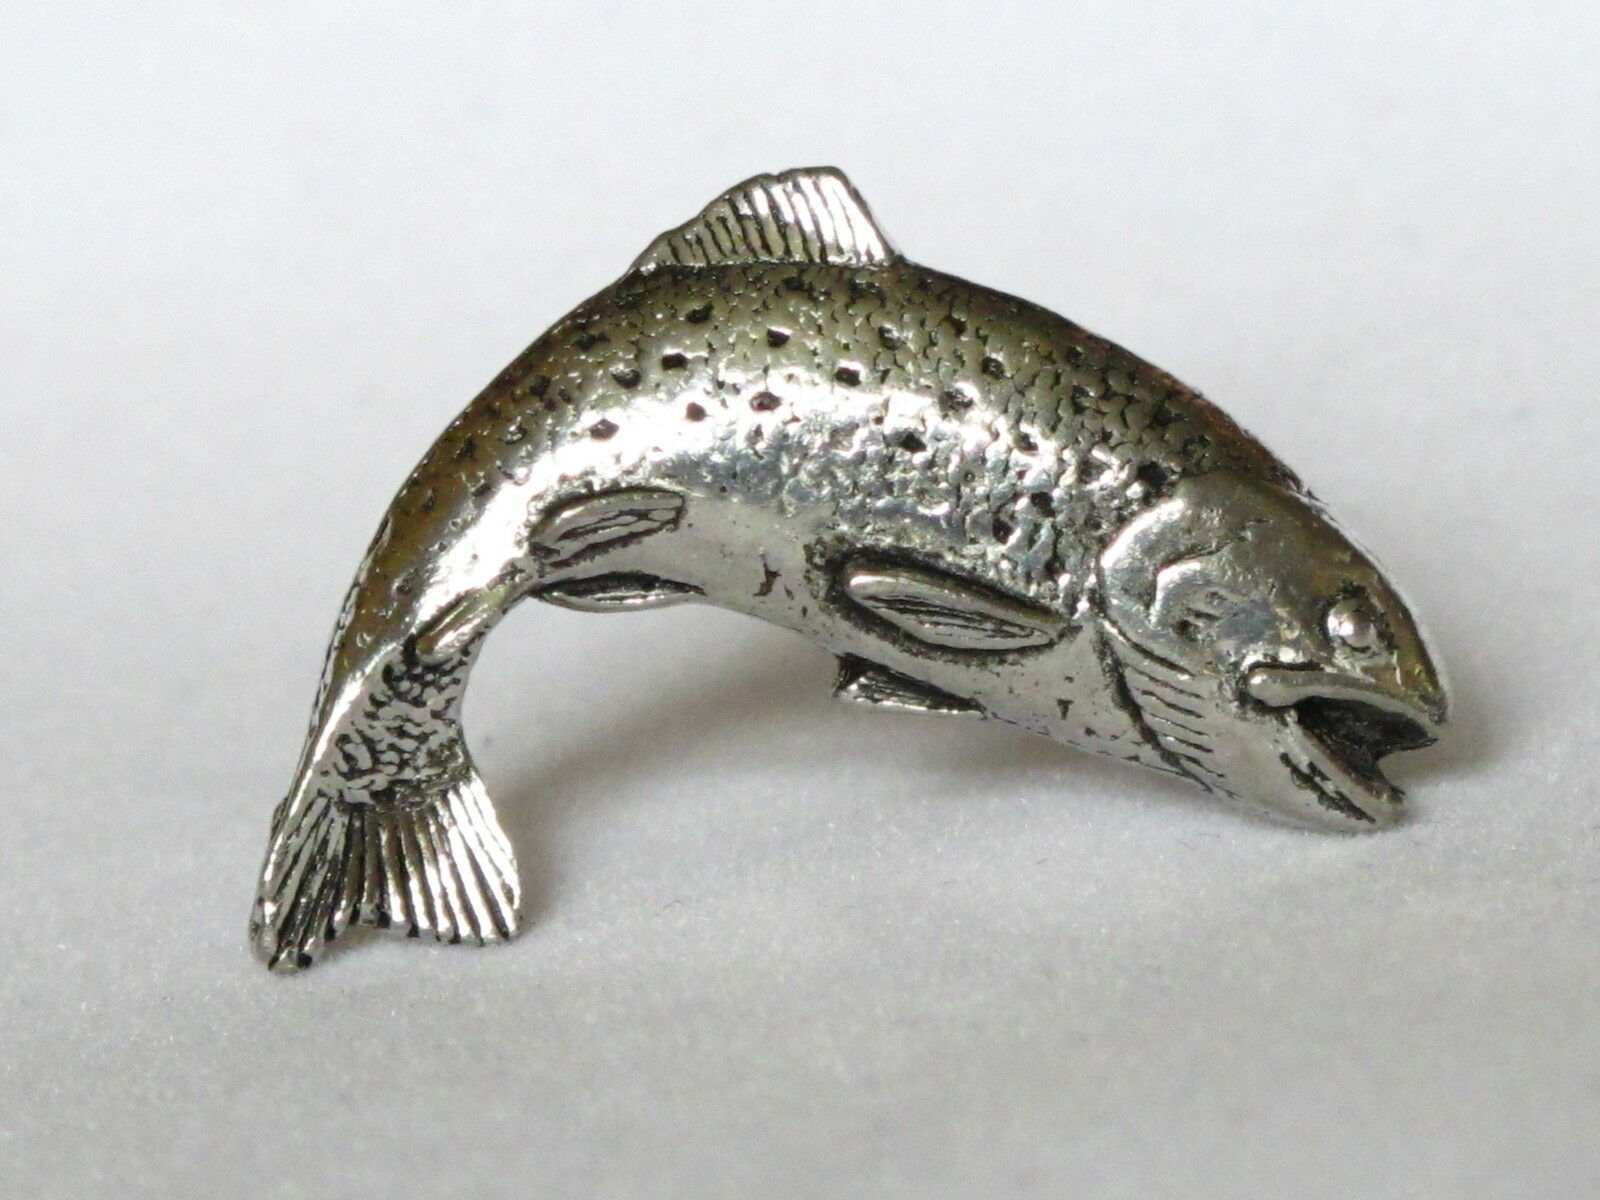 Leaping Trout Fishing Angling Fine Pewter Cufflinks Gift Mens Jewellery Boxed